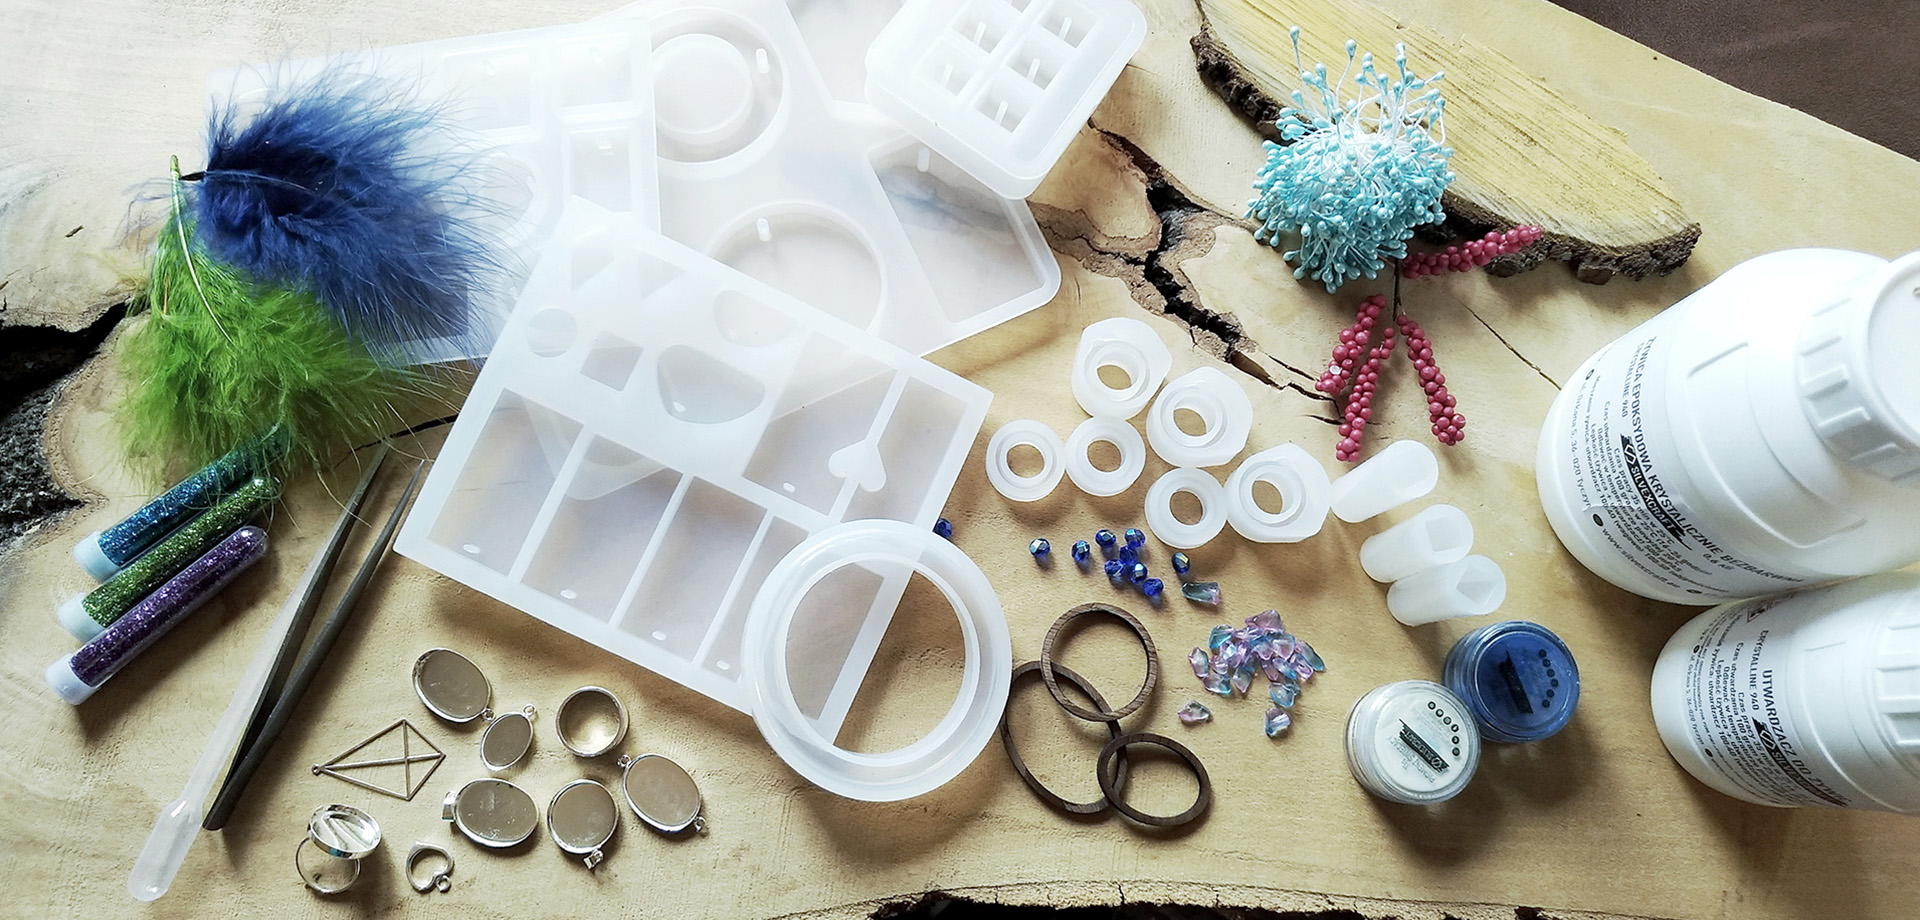 SILICONE MOULDS FOR EPOXY RESIN